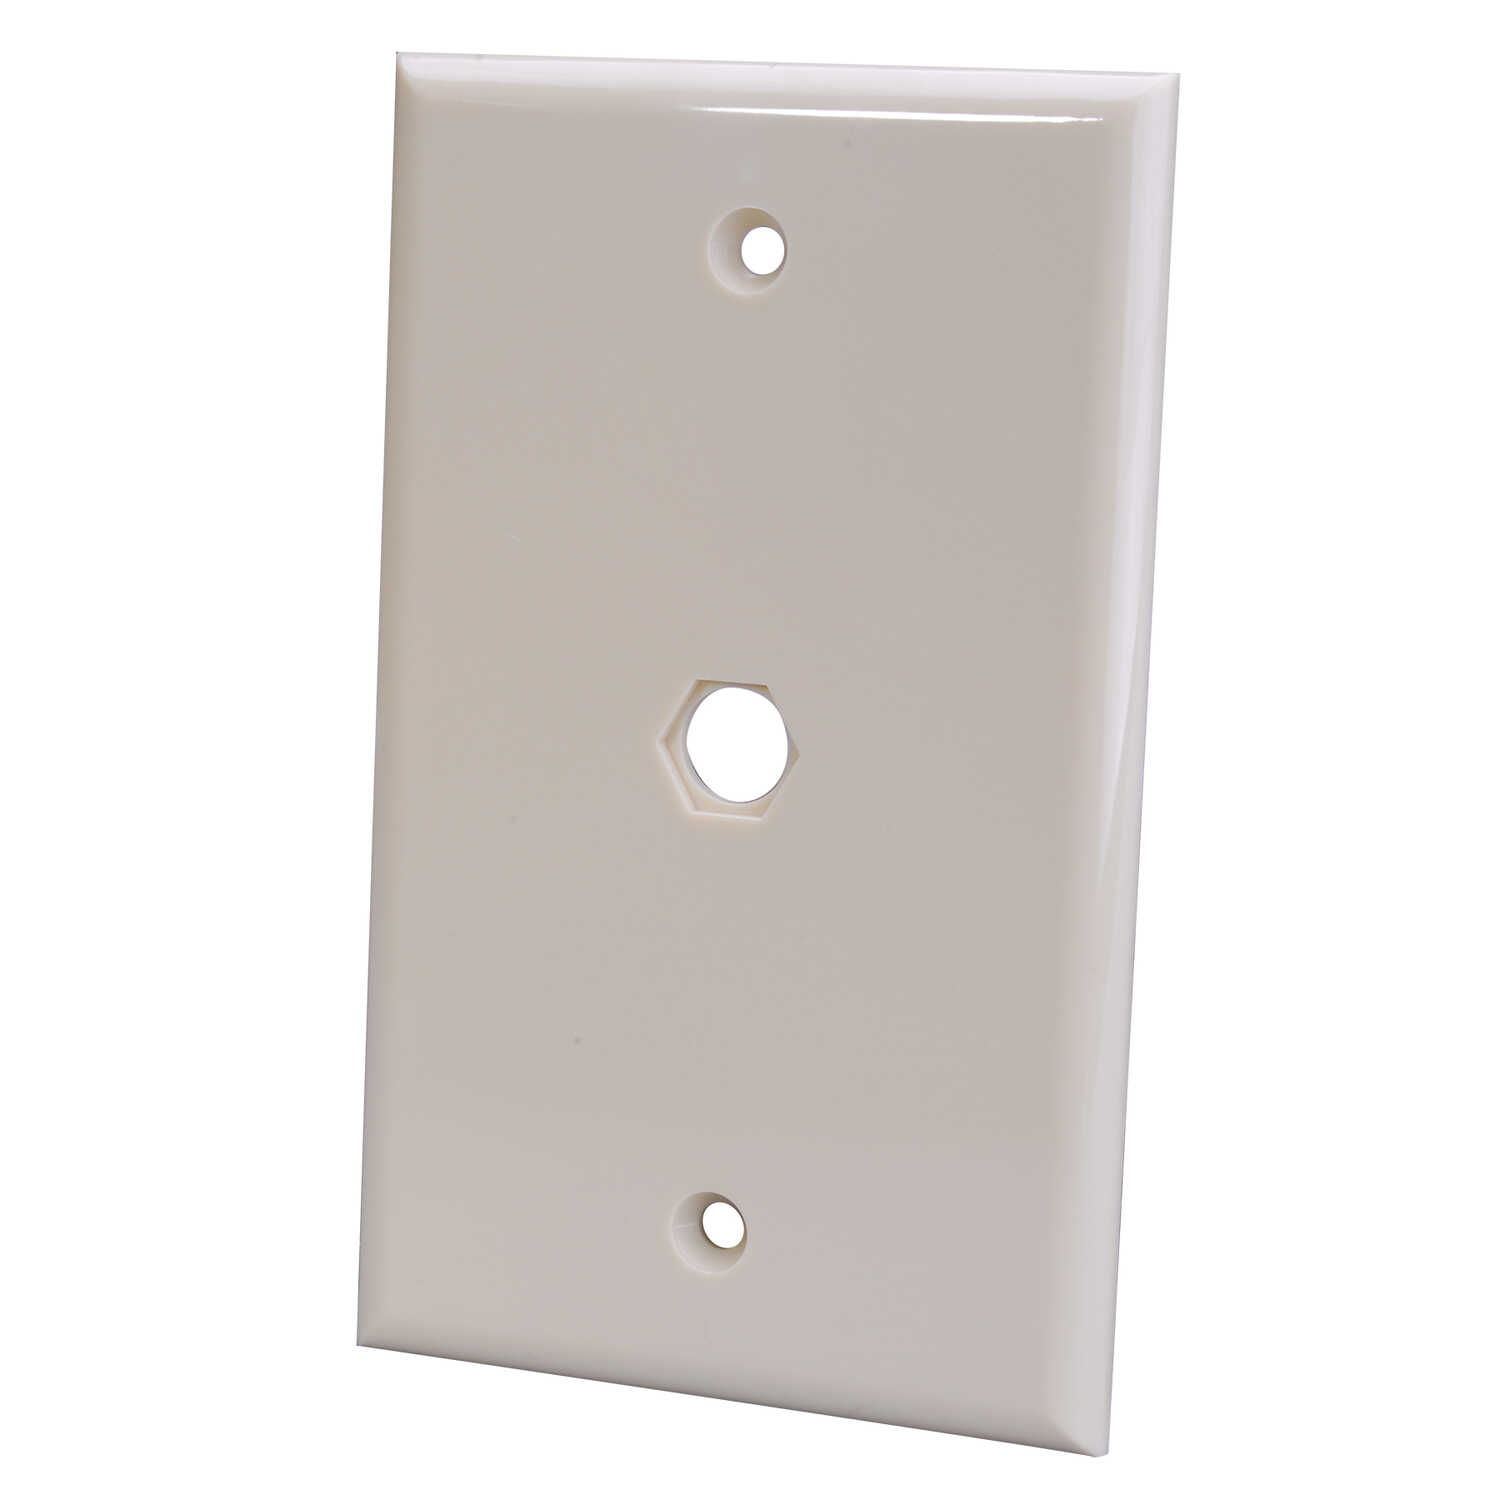 Ace  Ivory  1 gang Plastic  Coaxial  Wall Plate  1 pk